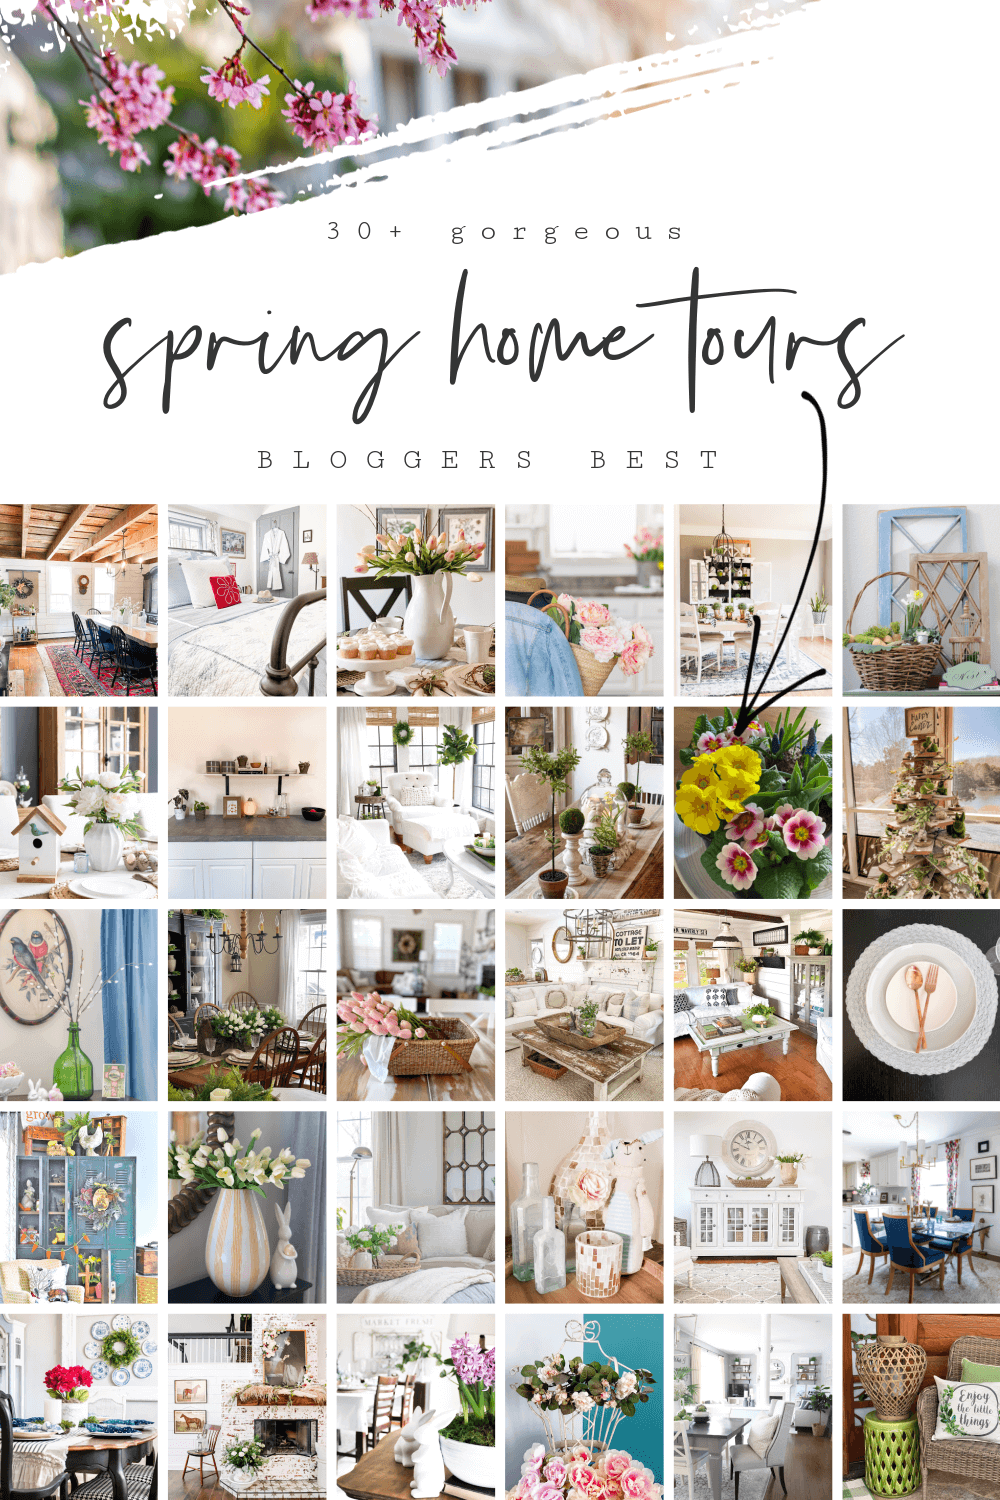 Graphic for Bloggers Best Spring Home Tours